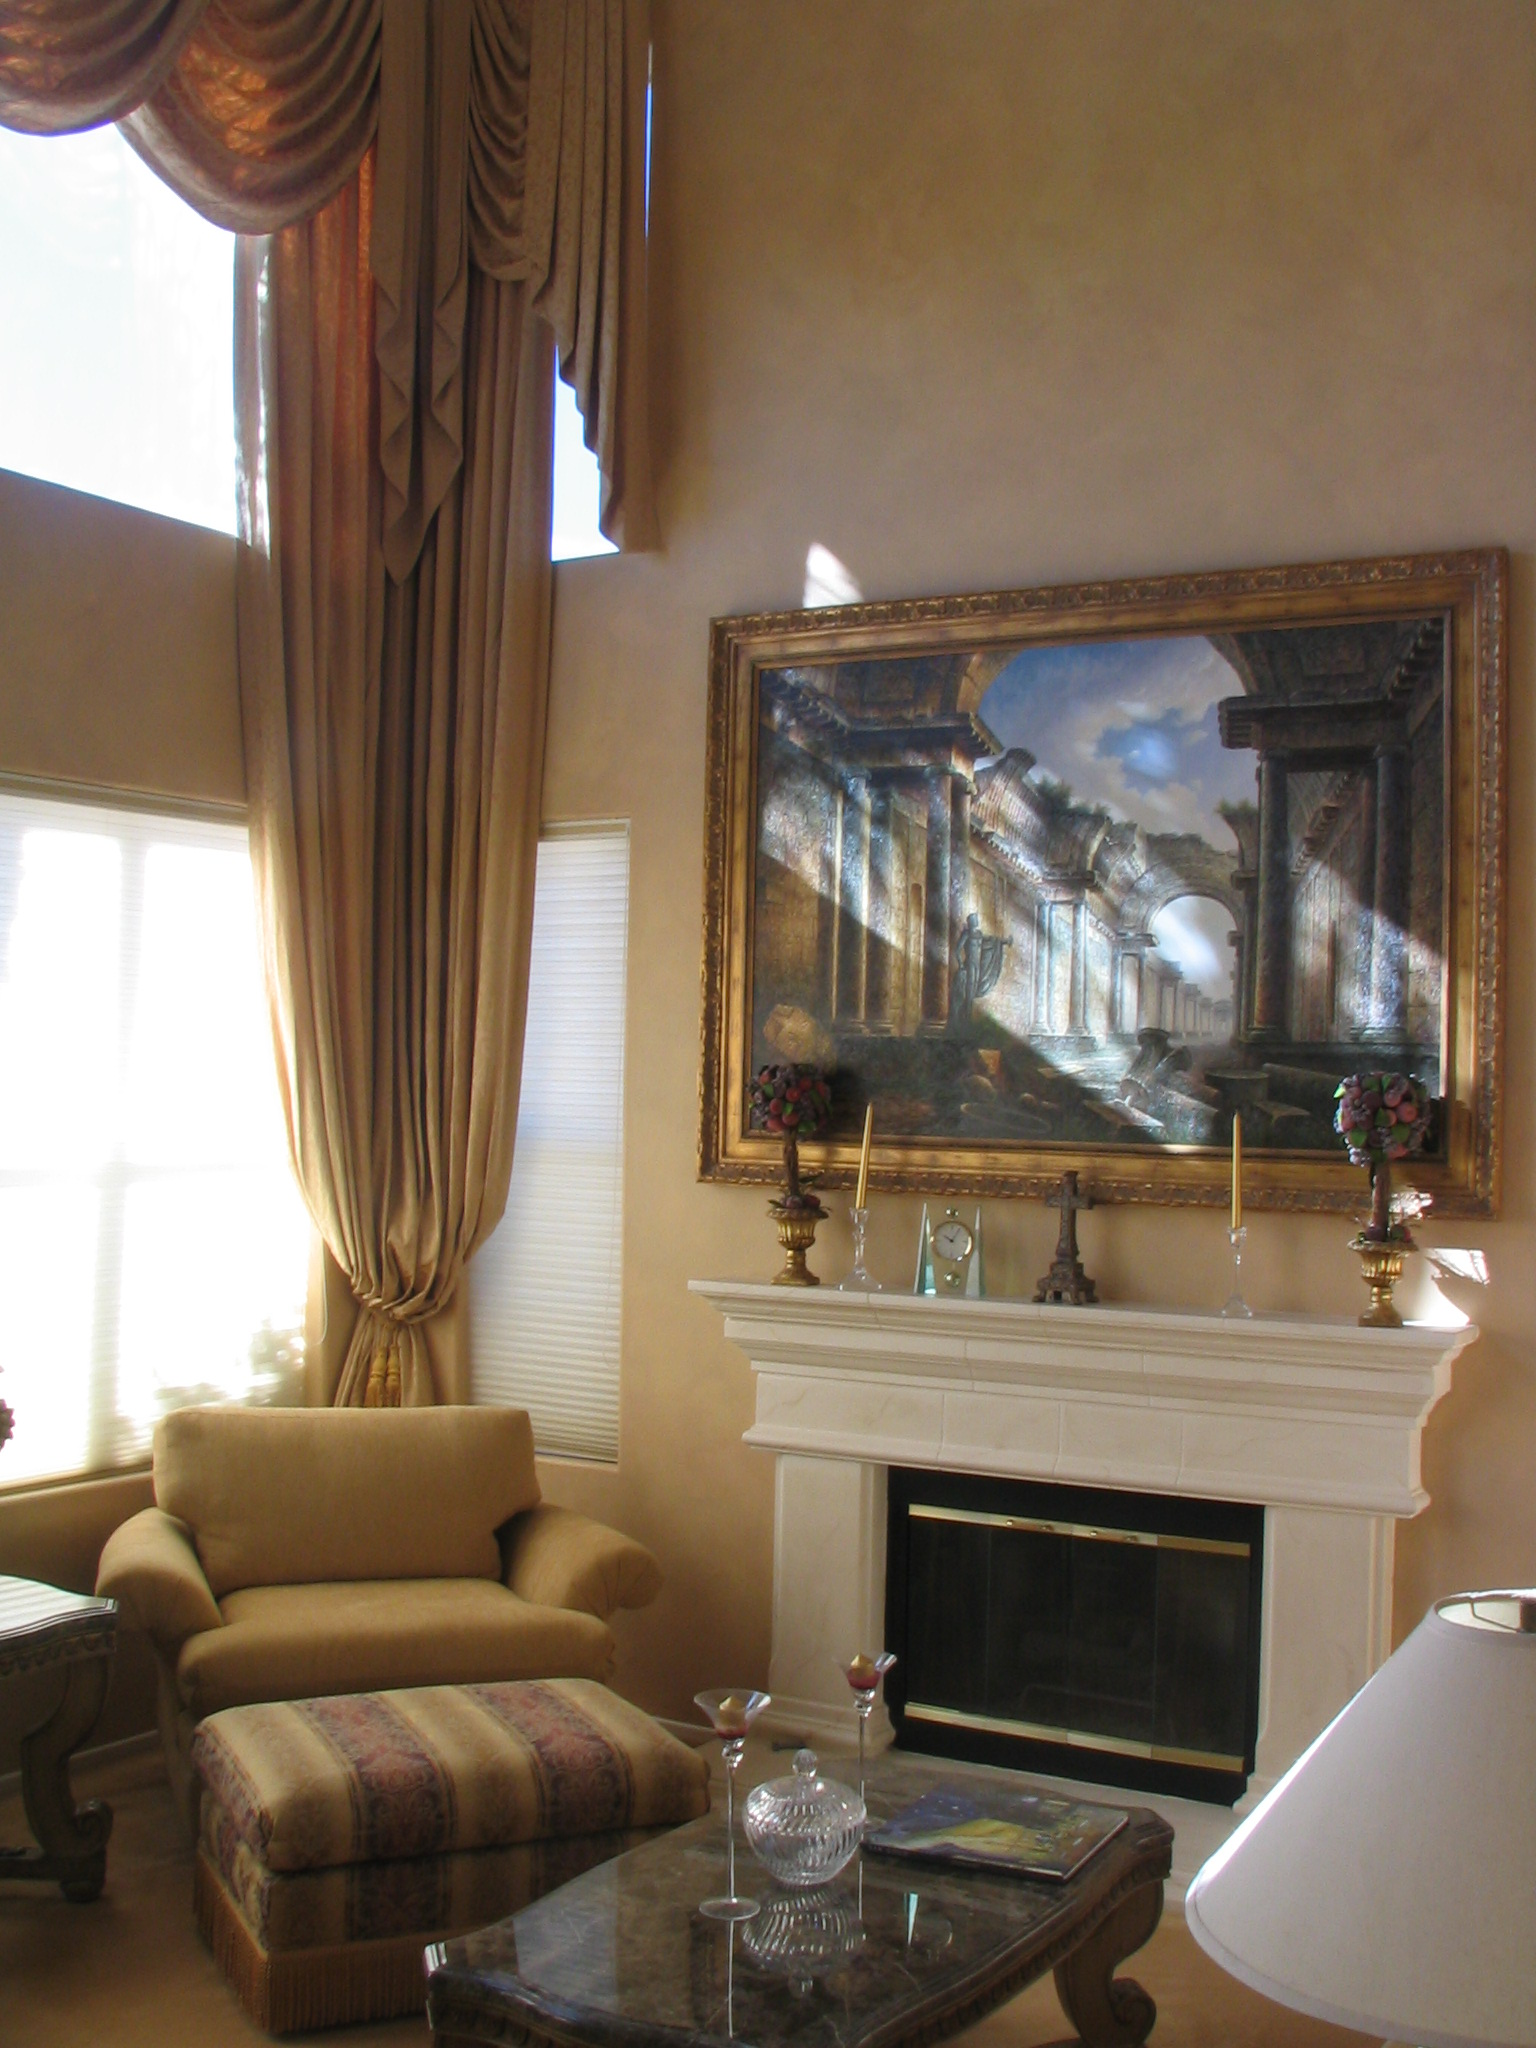 LIVING ROOM HANDPAINTED FAUX FINISH BY PAUL MAXWELL GODFREY